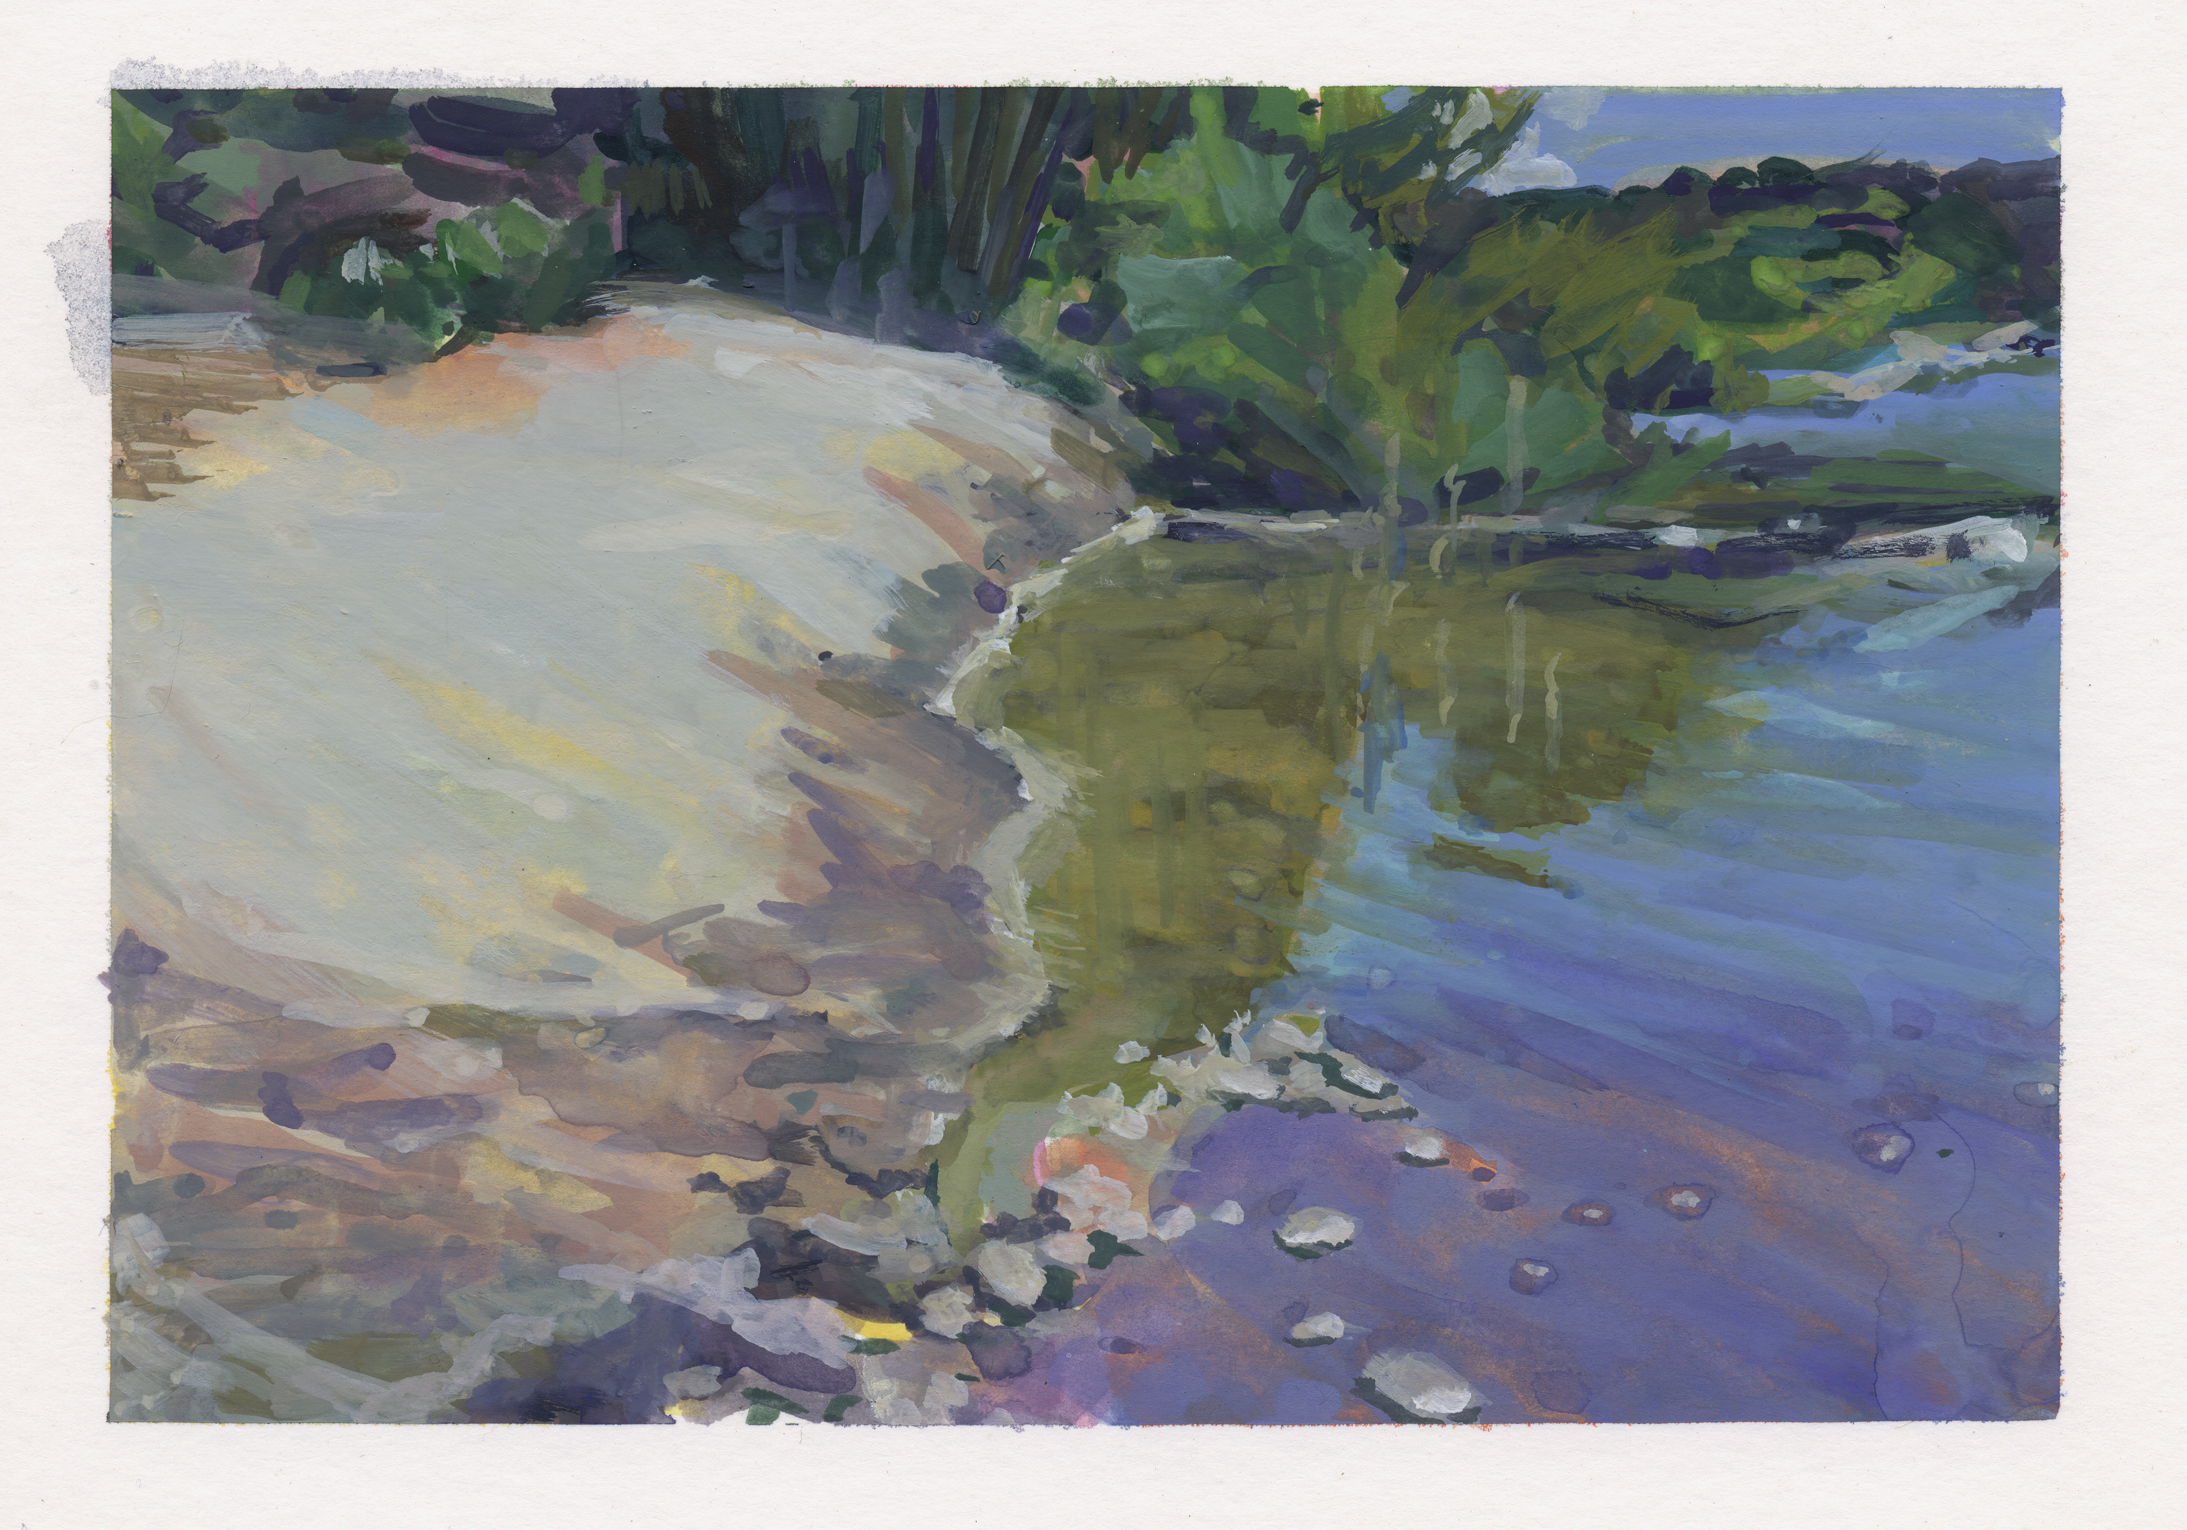 River Bank by Pamela Zwehl-Burke